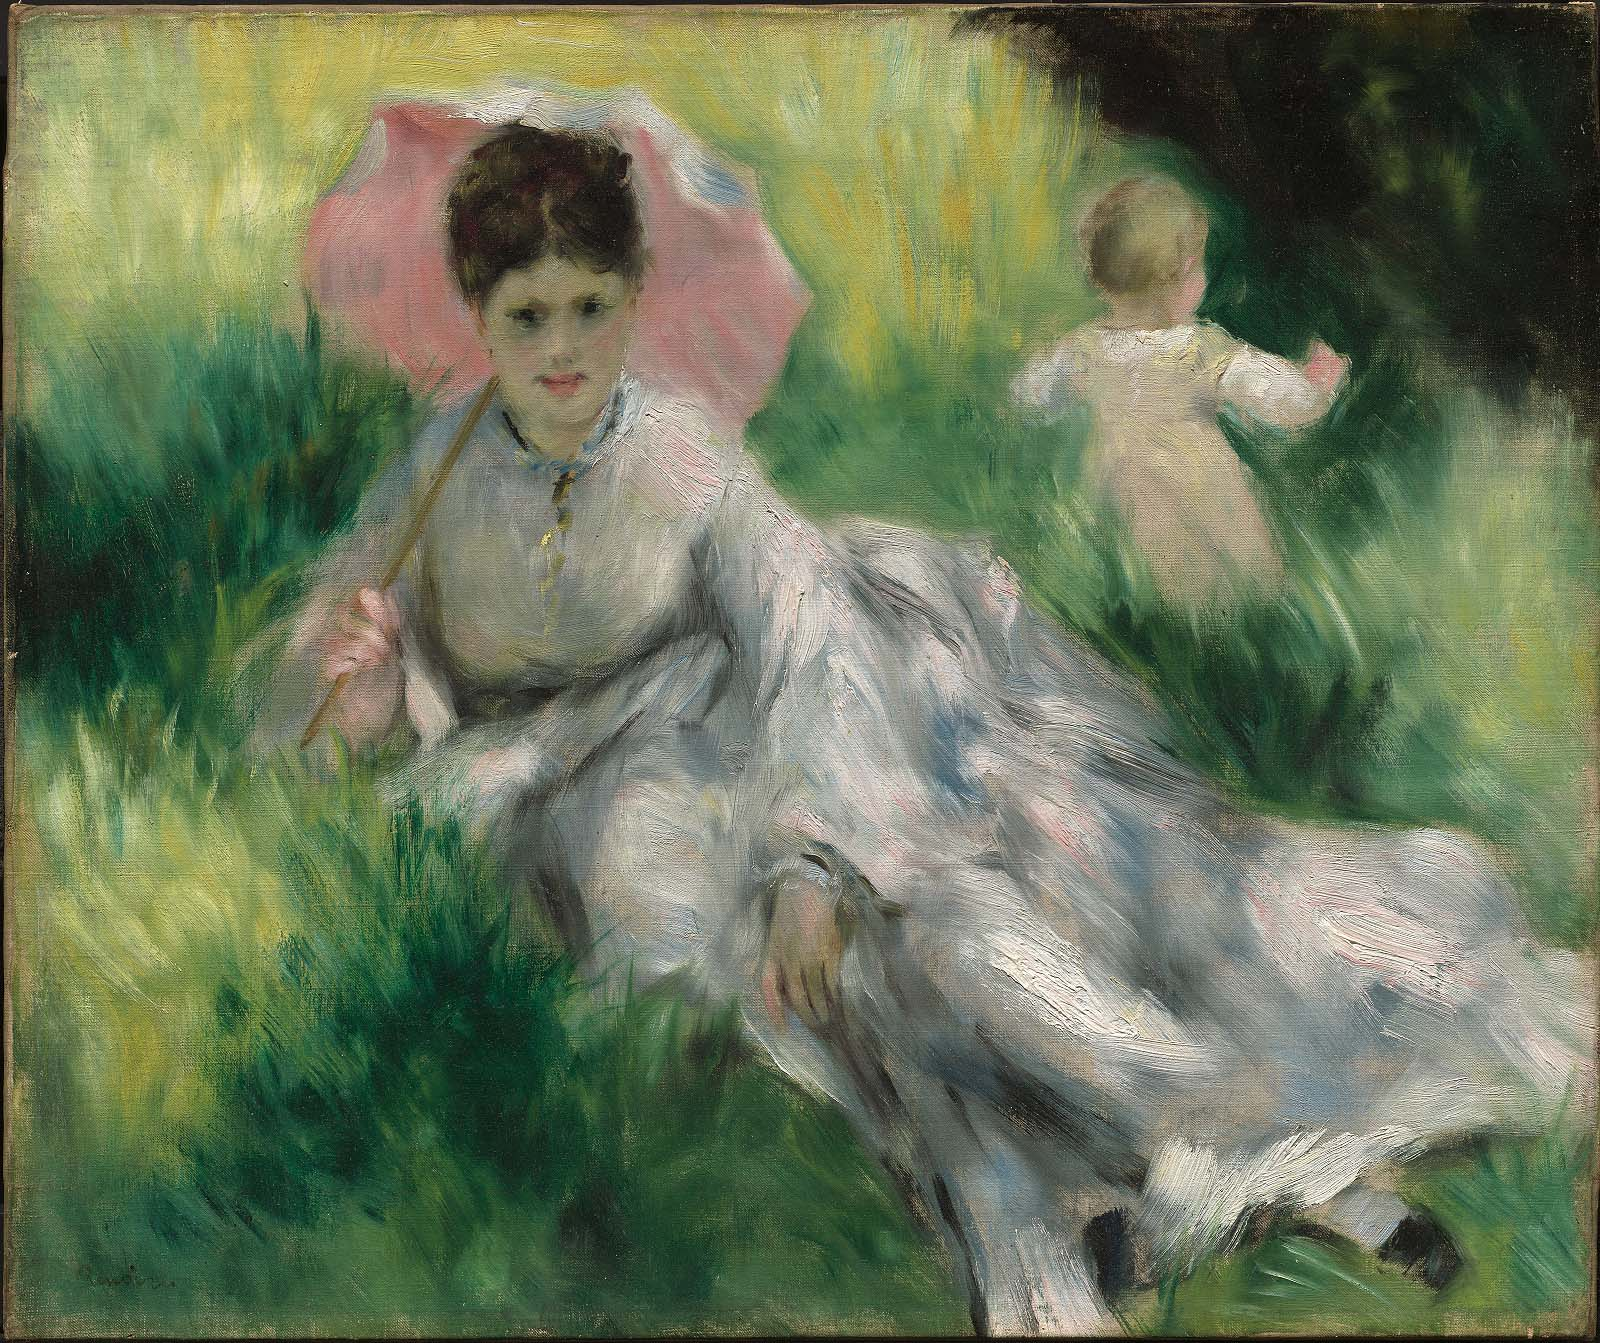 Woman With A Parasol And Small Child On A Sunlit Hillside